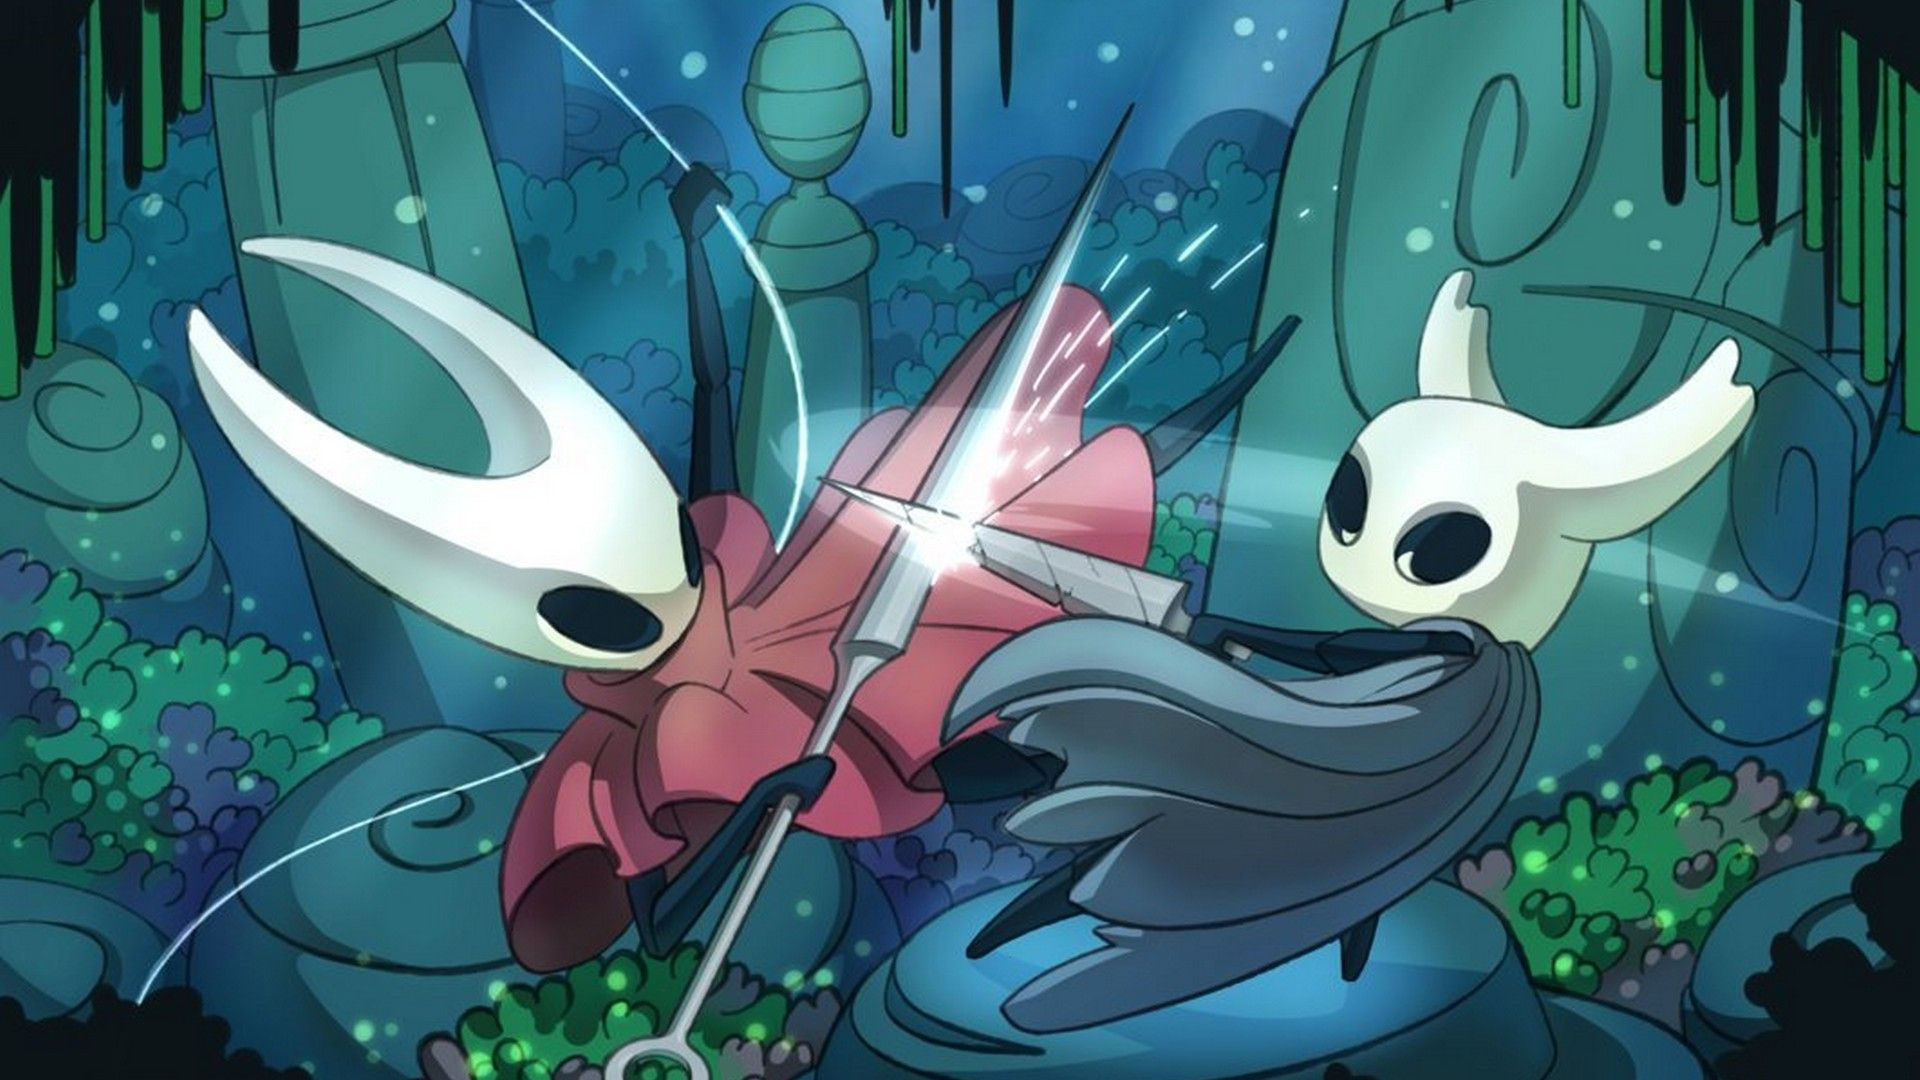 Hollow Knight Game Desktop Backgrounds Hd 2021 Live Wallpaper Hd Knight Games Knight Hollow Art